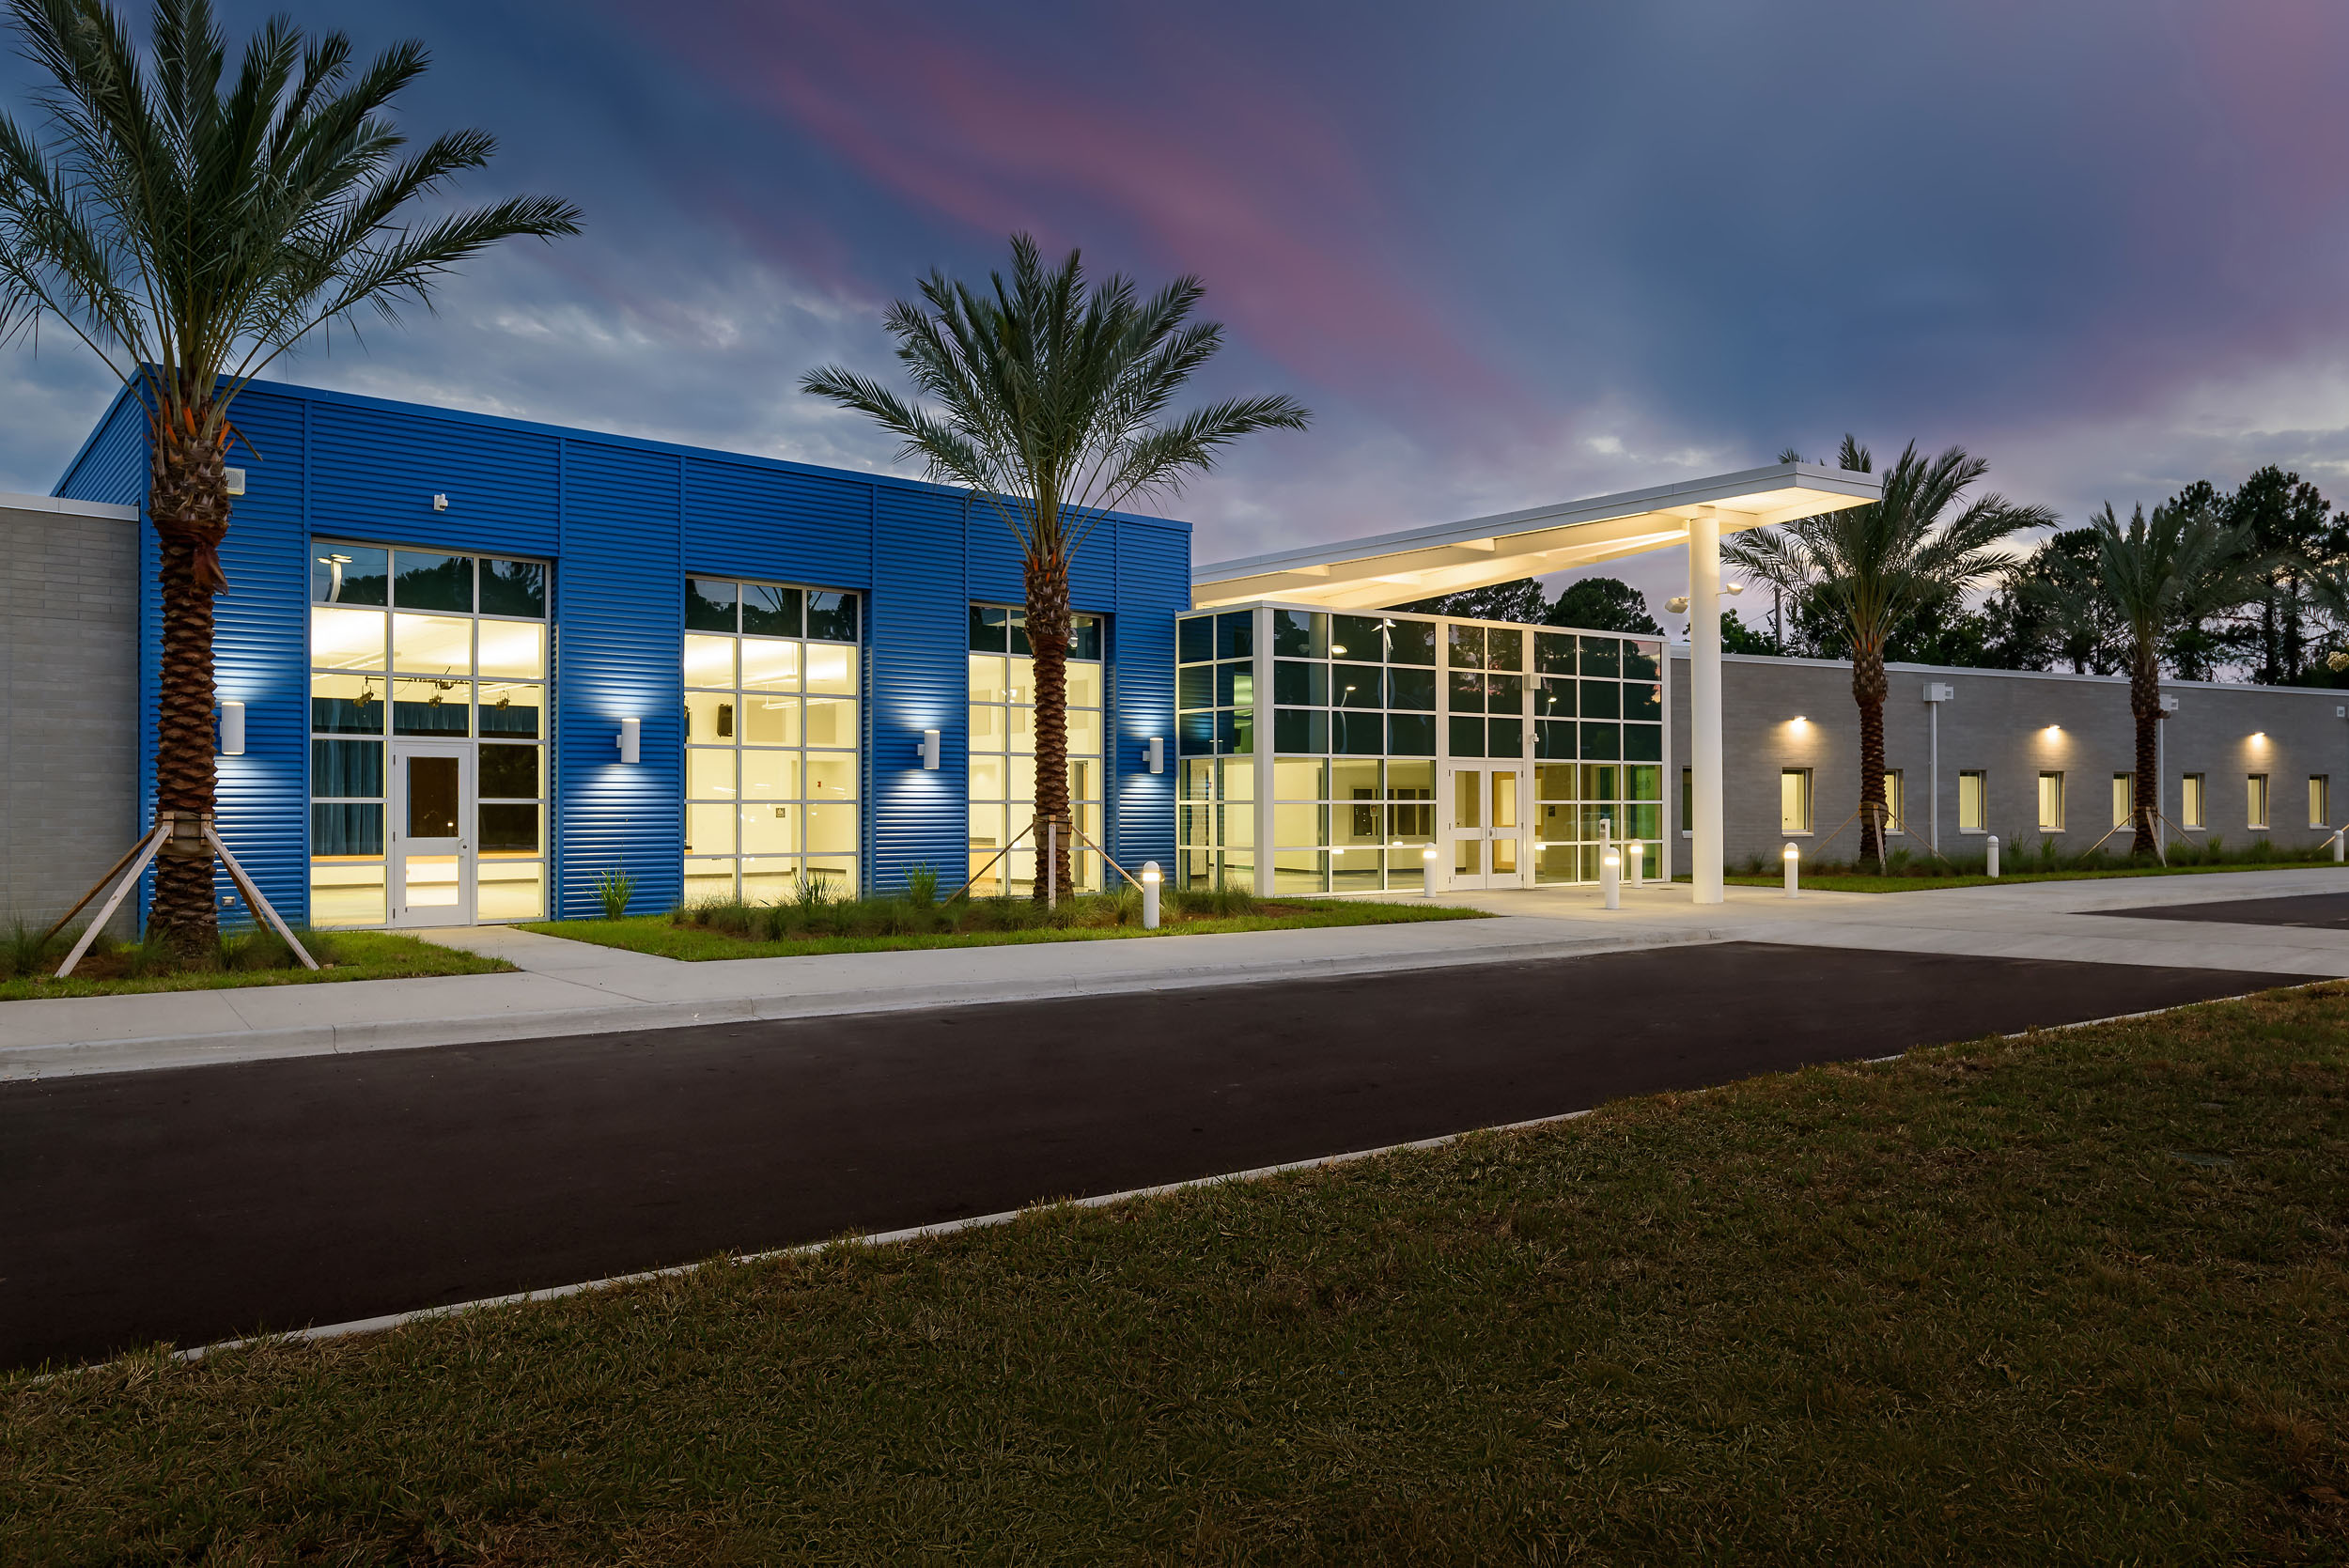 Arlington Community Academy in Jacksonville. Photographed for ENB Architects.